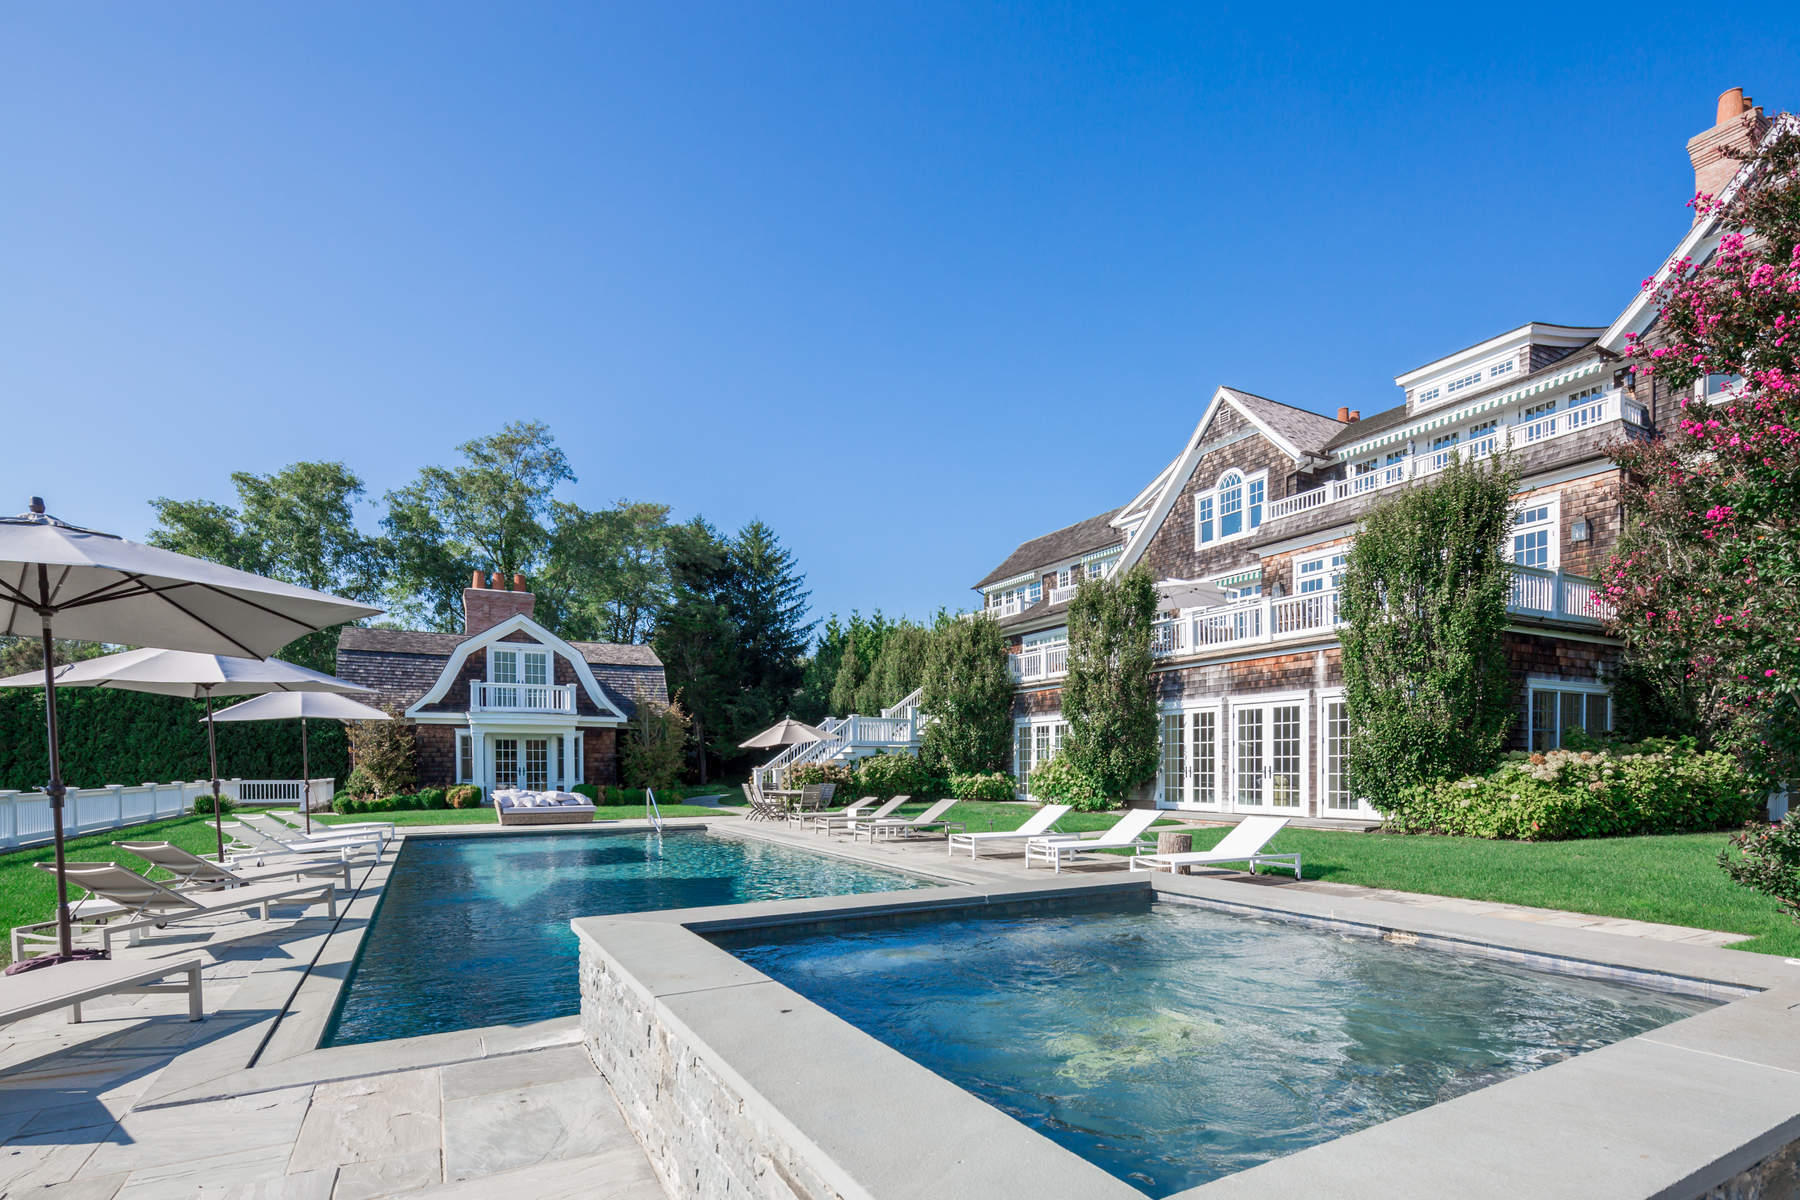 Single Family Home for Rent at Luxurious Pondfront with Tennis Bridgehampton North, Bridgehampton, New York, 11932 United States